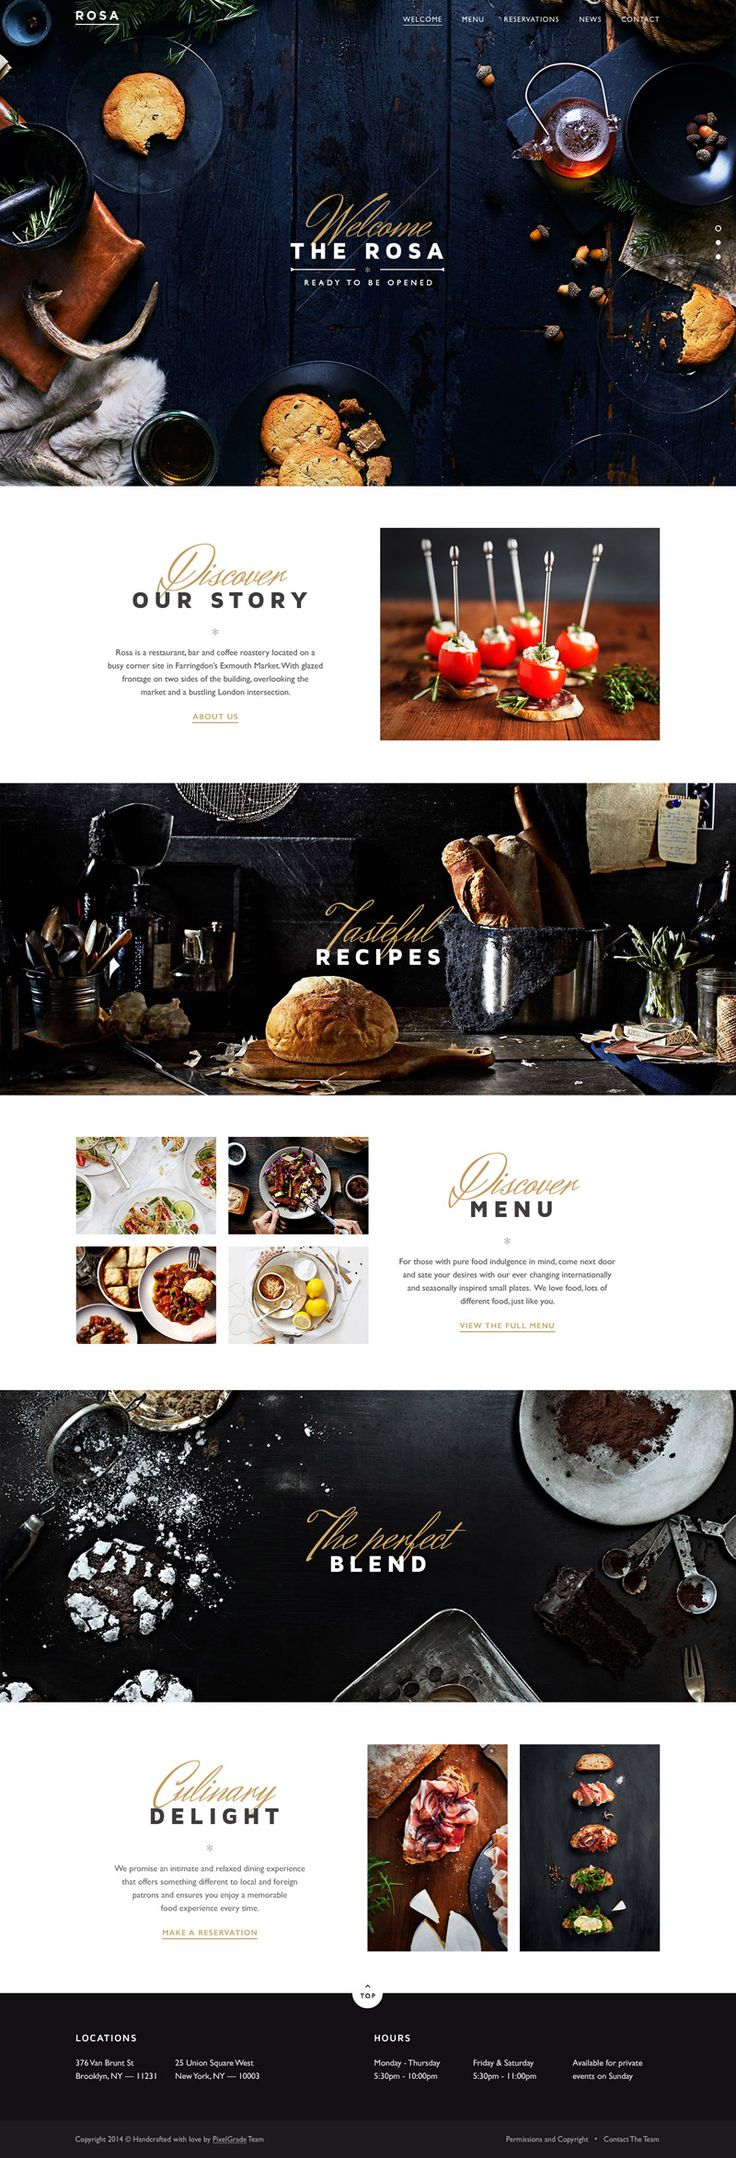 "We could leave the FLCKWLL script with ""photobooth"" tagline on the main photo and have a clean FLCKWLL in Brandon Grotesque in the header. ROSA Restaurant Website"